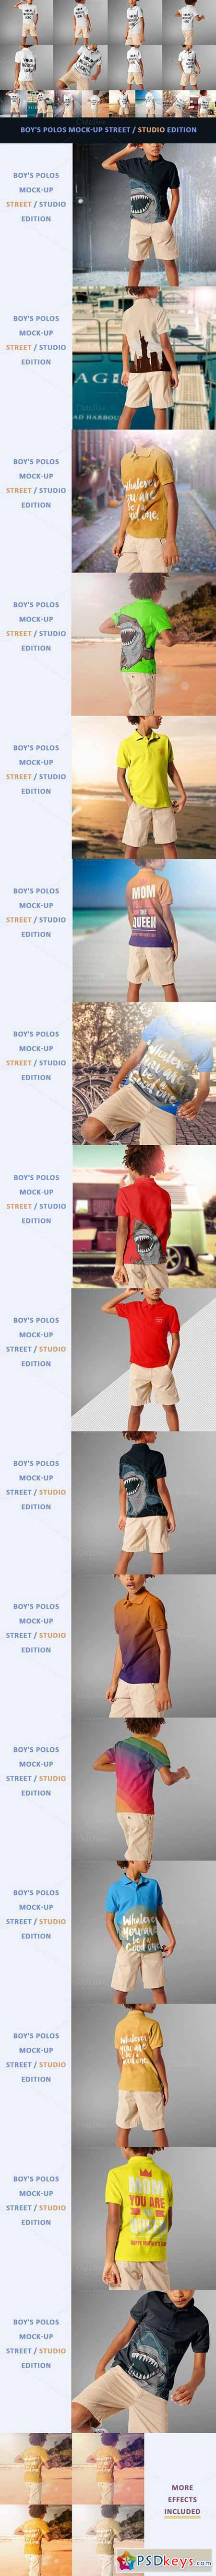 Boy's Polos Mock-up Street studio 476697